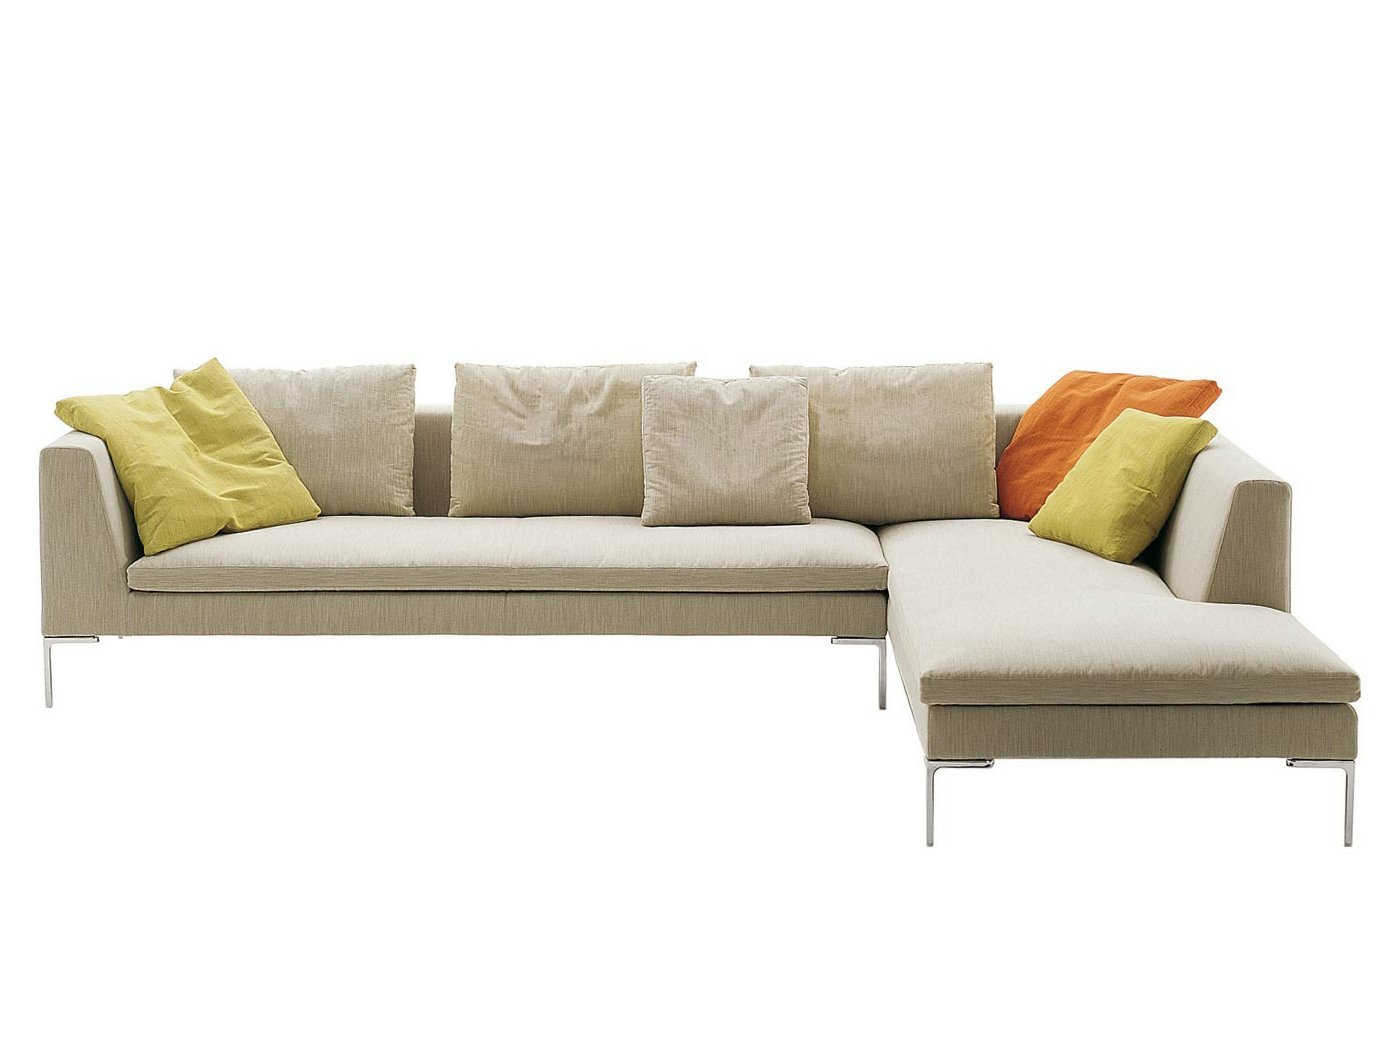 Charles corner sofa by b b italia design antonio citterio for B b couch